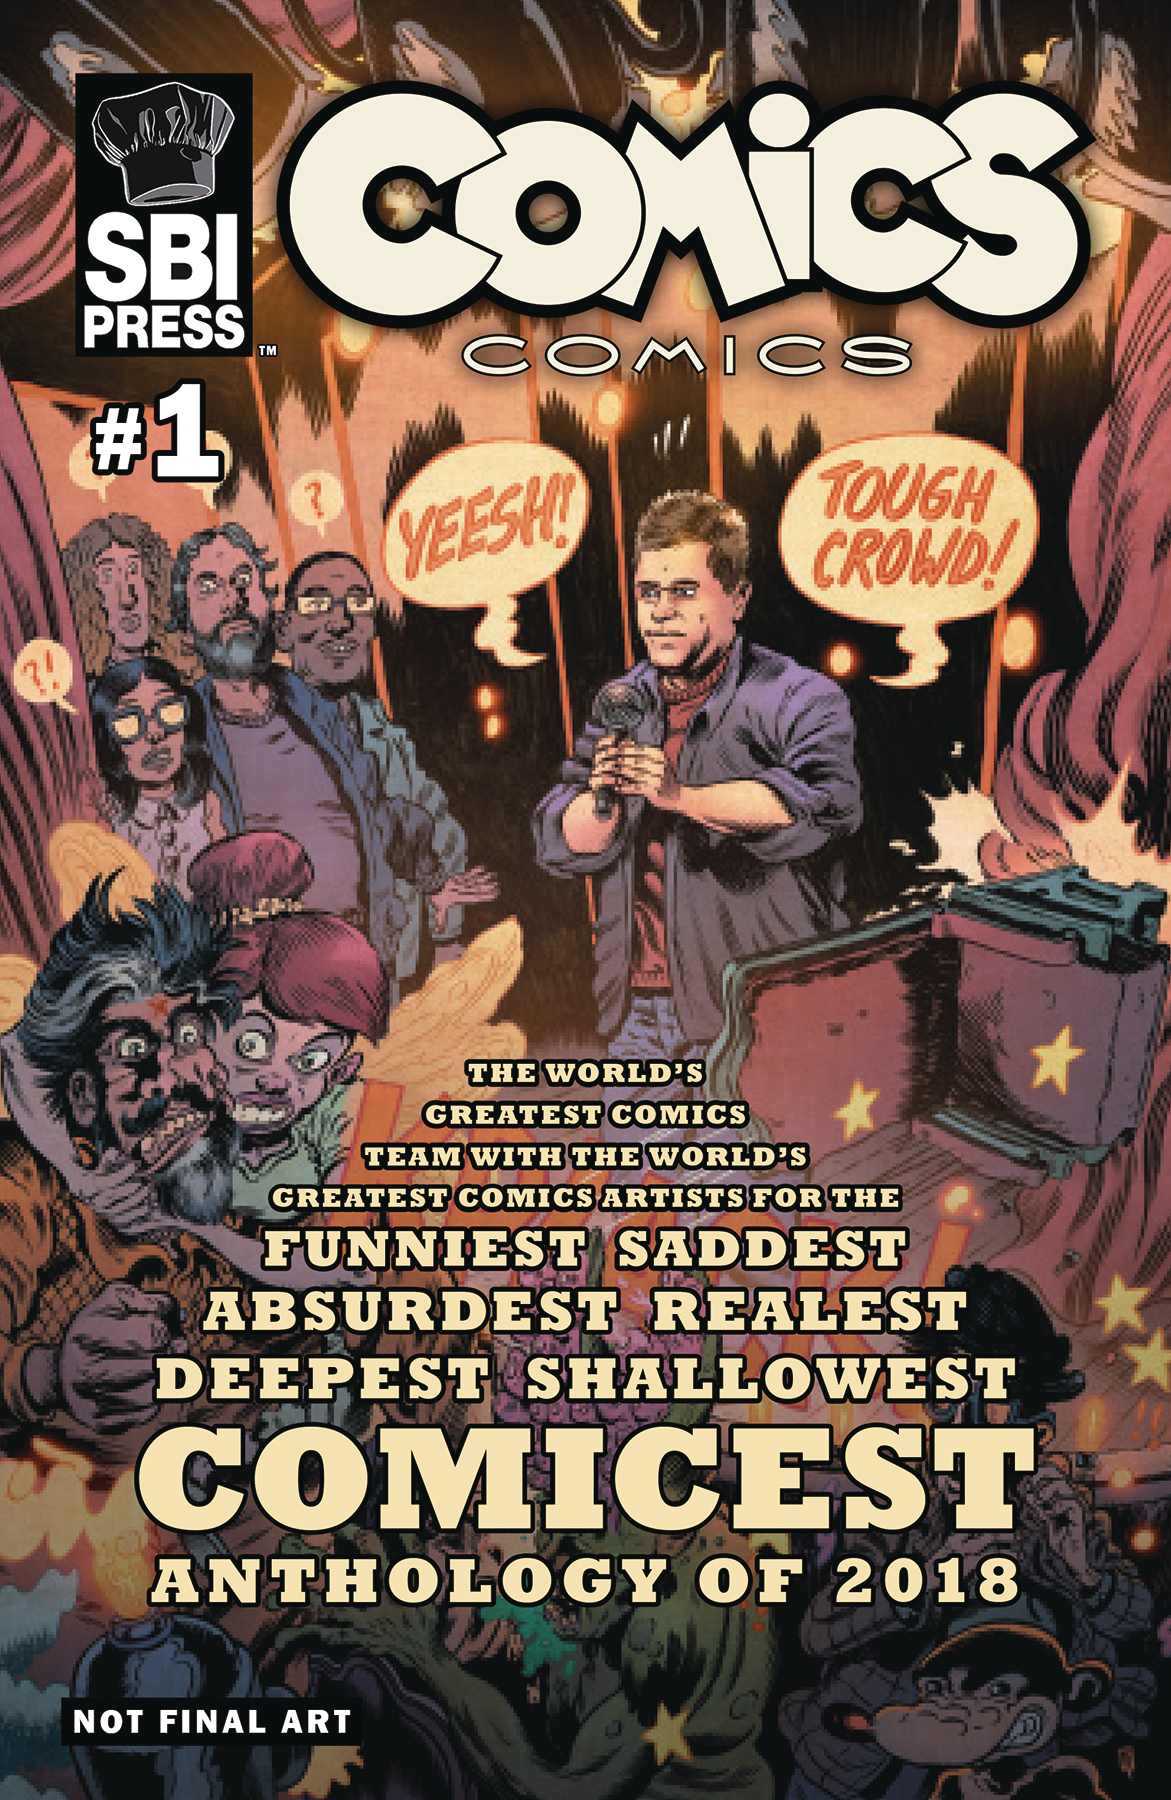 COMICS COMICS QUARTERLY #1